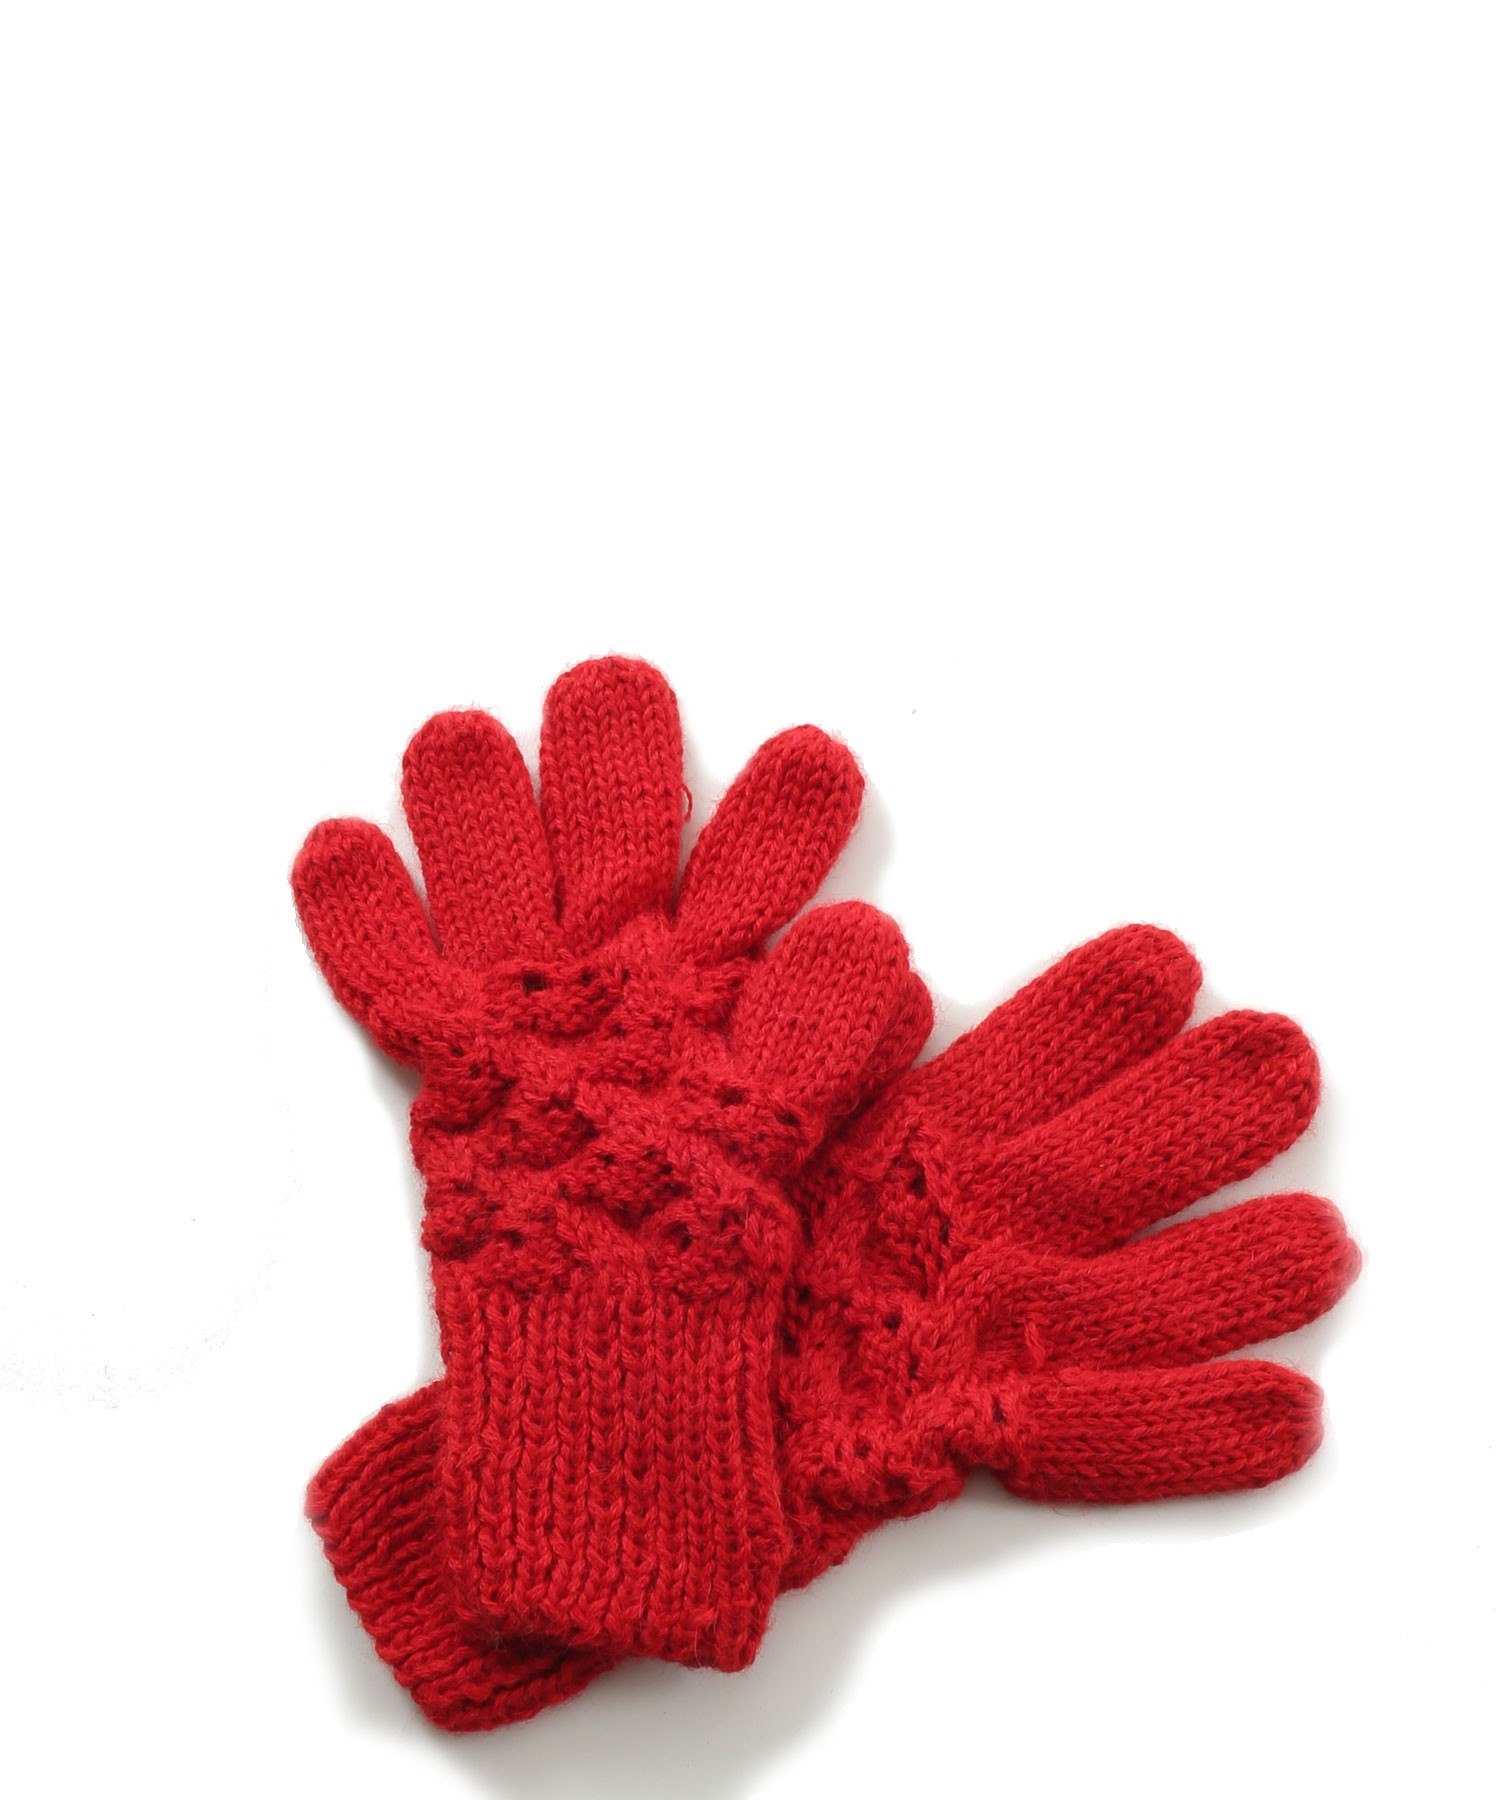 Find great deals on eBay for red knit gloves. Shop with confidence.